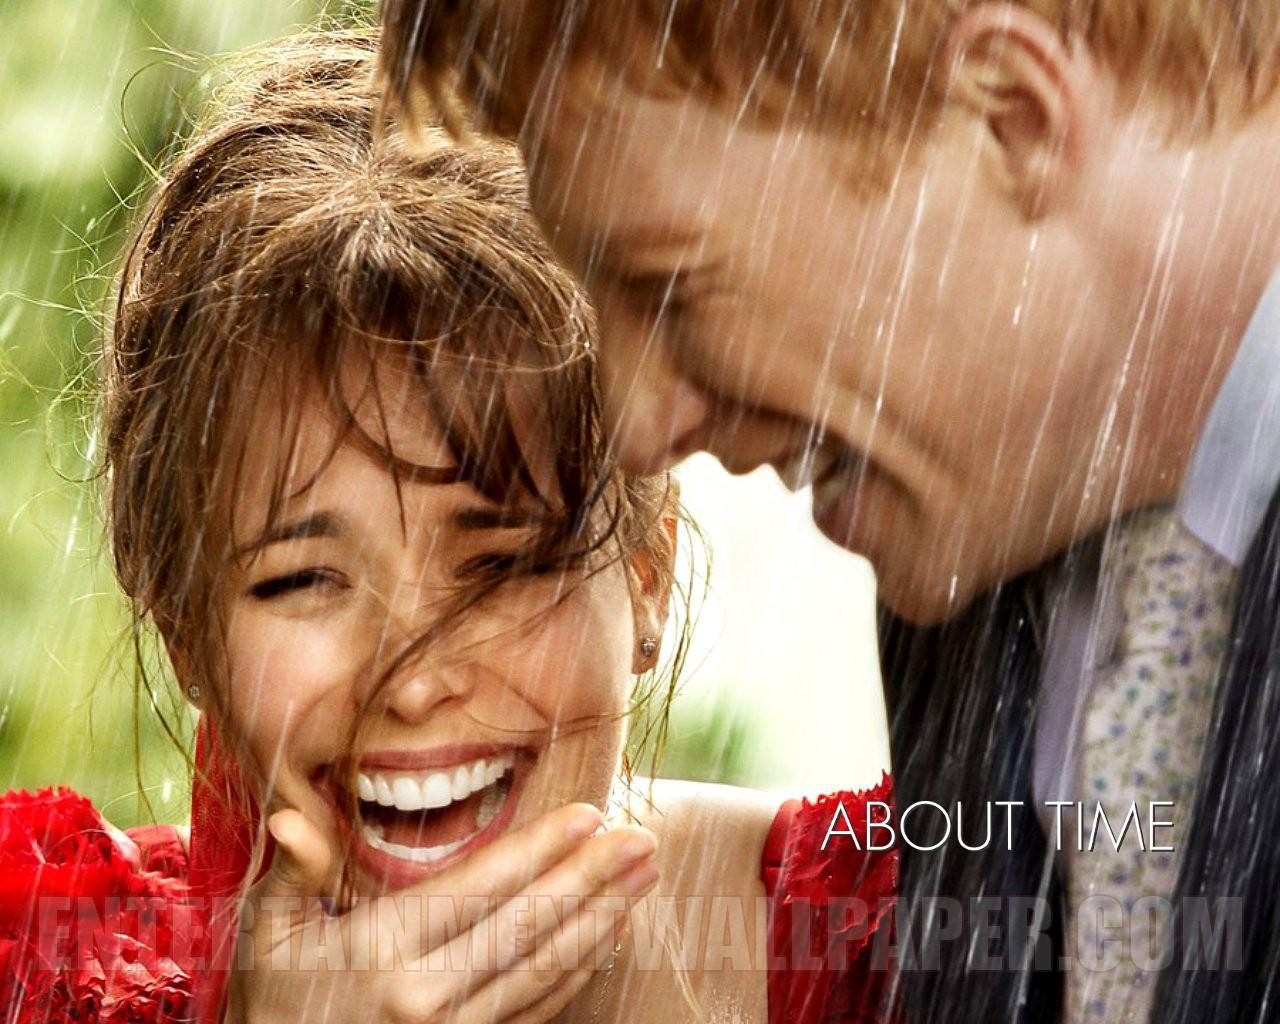 About Time Movie Pictures. Posters